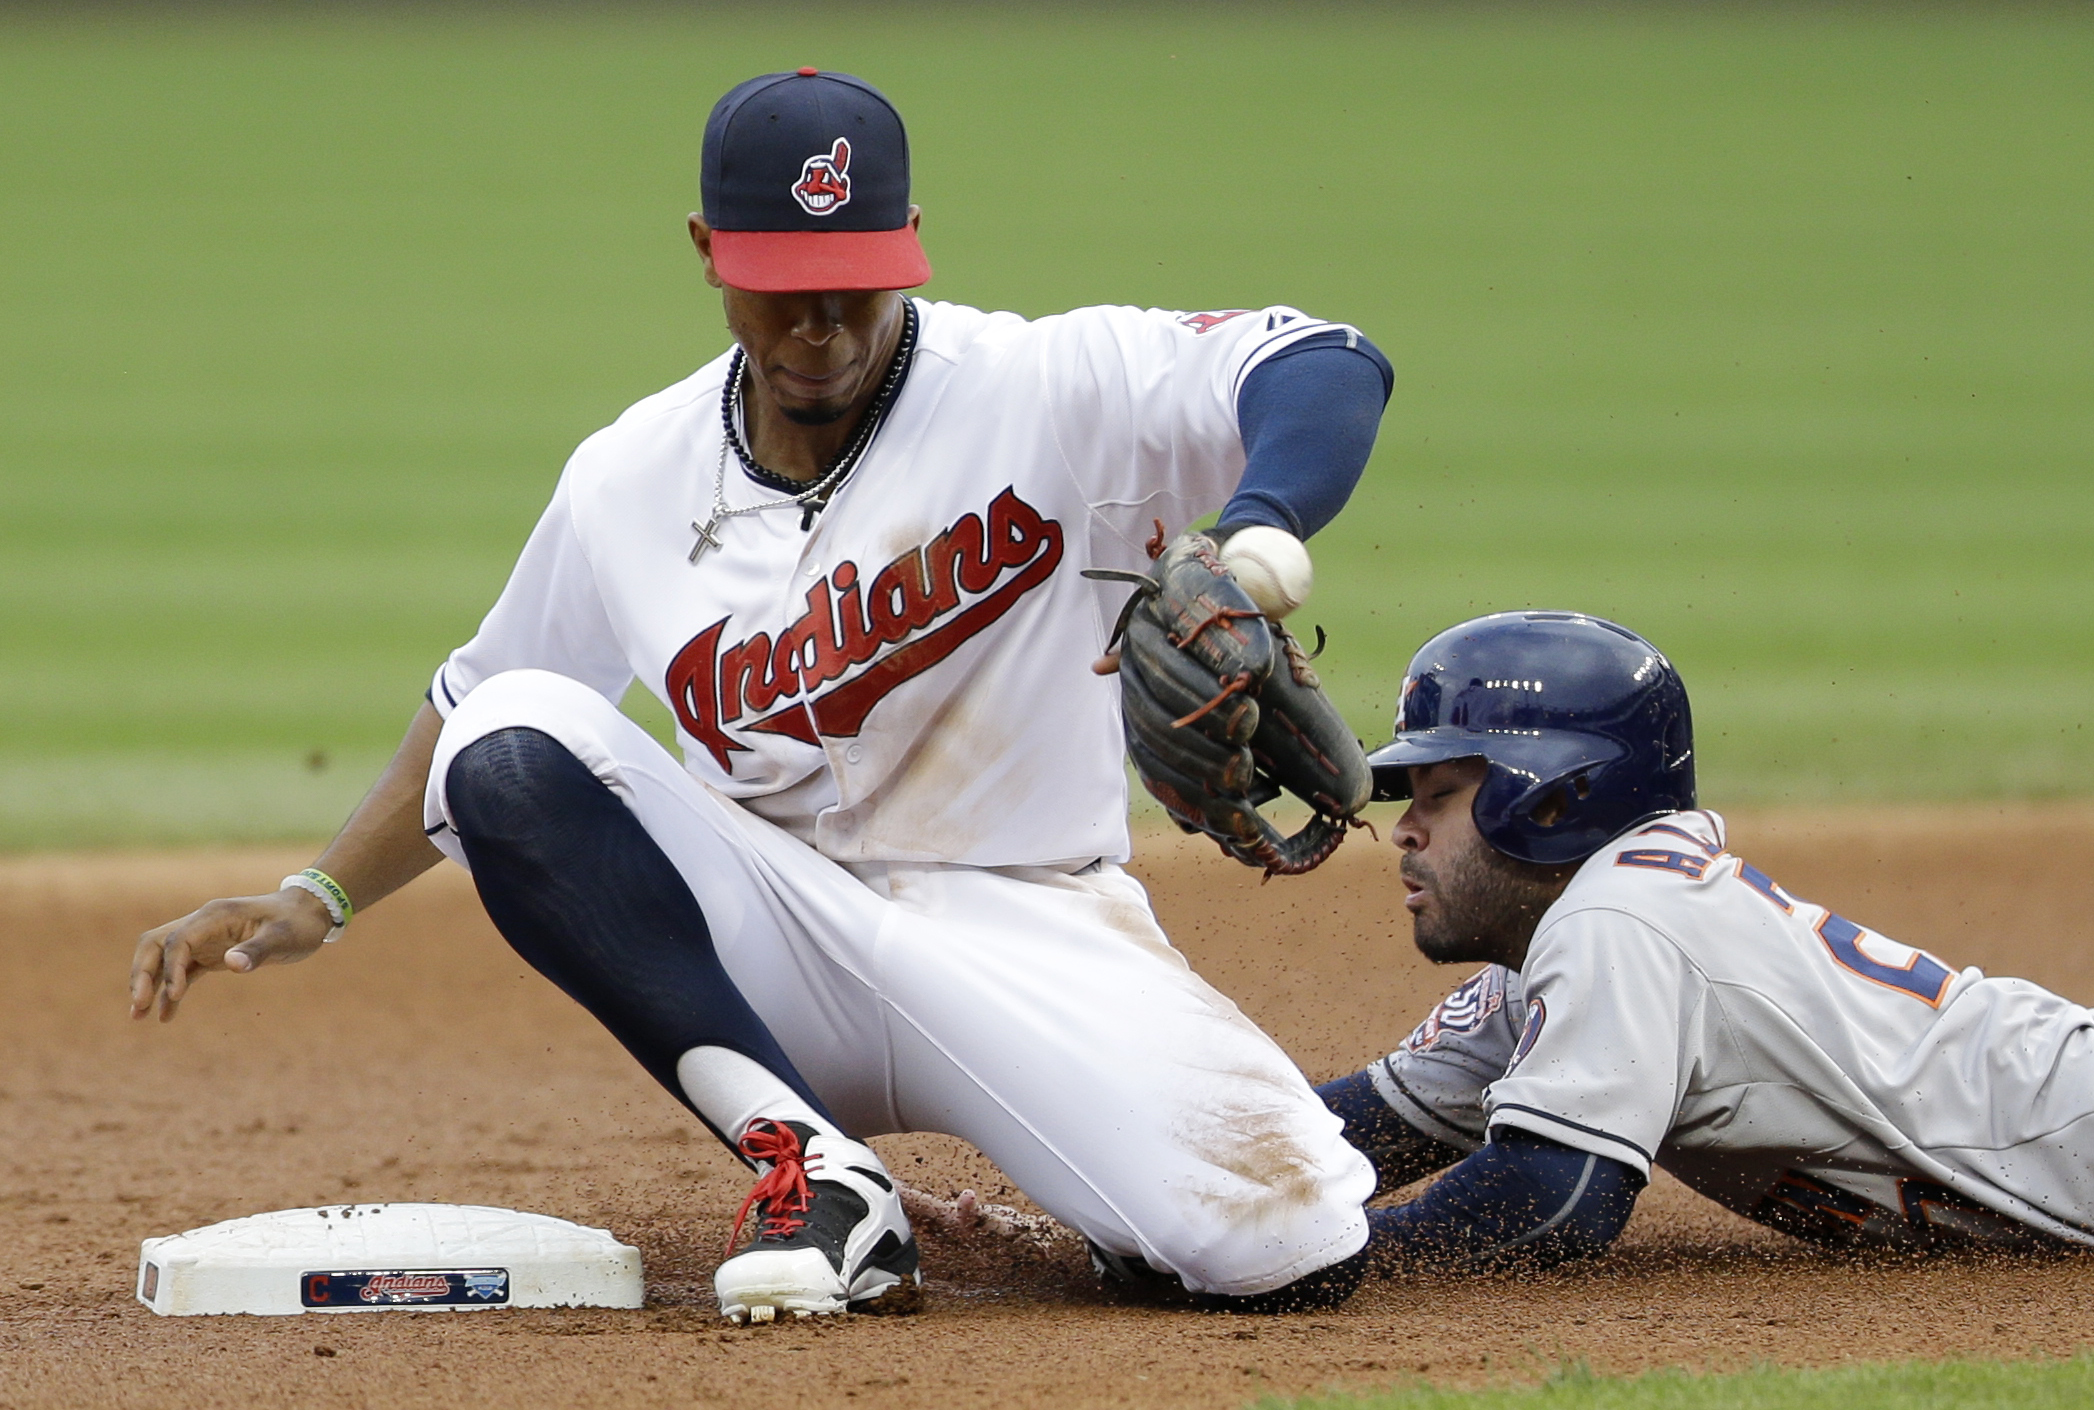 Houston Astros' Jose Altuve slides safely into second base on a wild pitch by Cleveland Indians starting pitcher Trevor Bauer as Francisco Lindor bobbles the ball in the first inning of a baseball game, Wednesday, July 8, 2015, in Cleveland.   (AP Photo/T